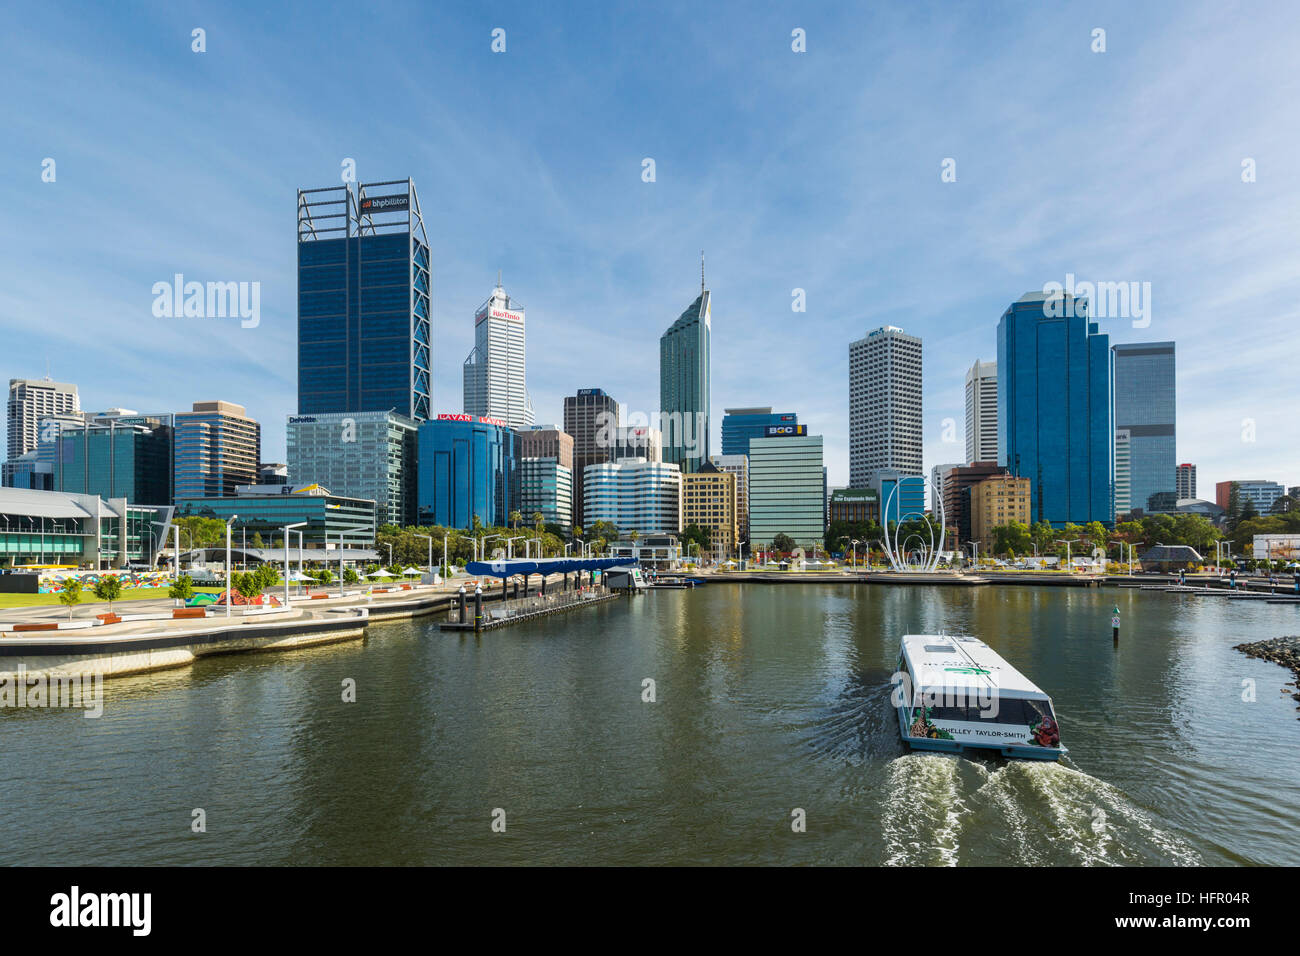 A Swan River ferry arriving at Elizabeth Quay ferry terminal with the city skyline beyond.  Perth, Western Australia, Stock Photo